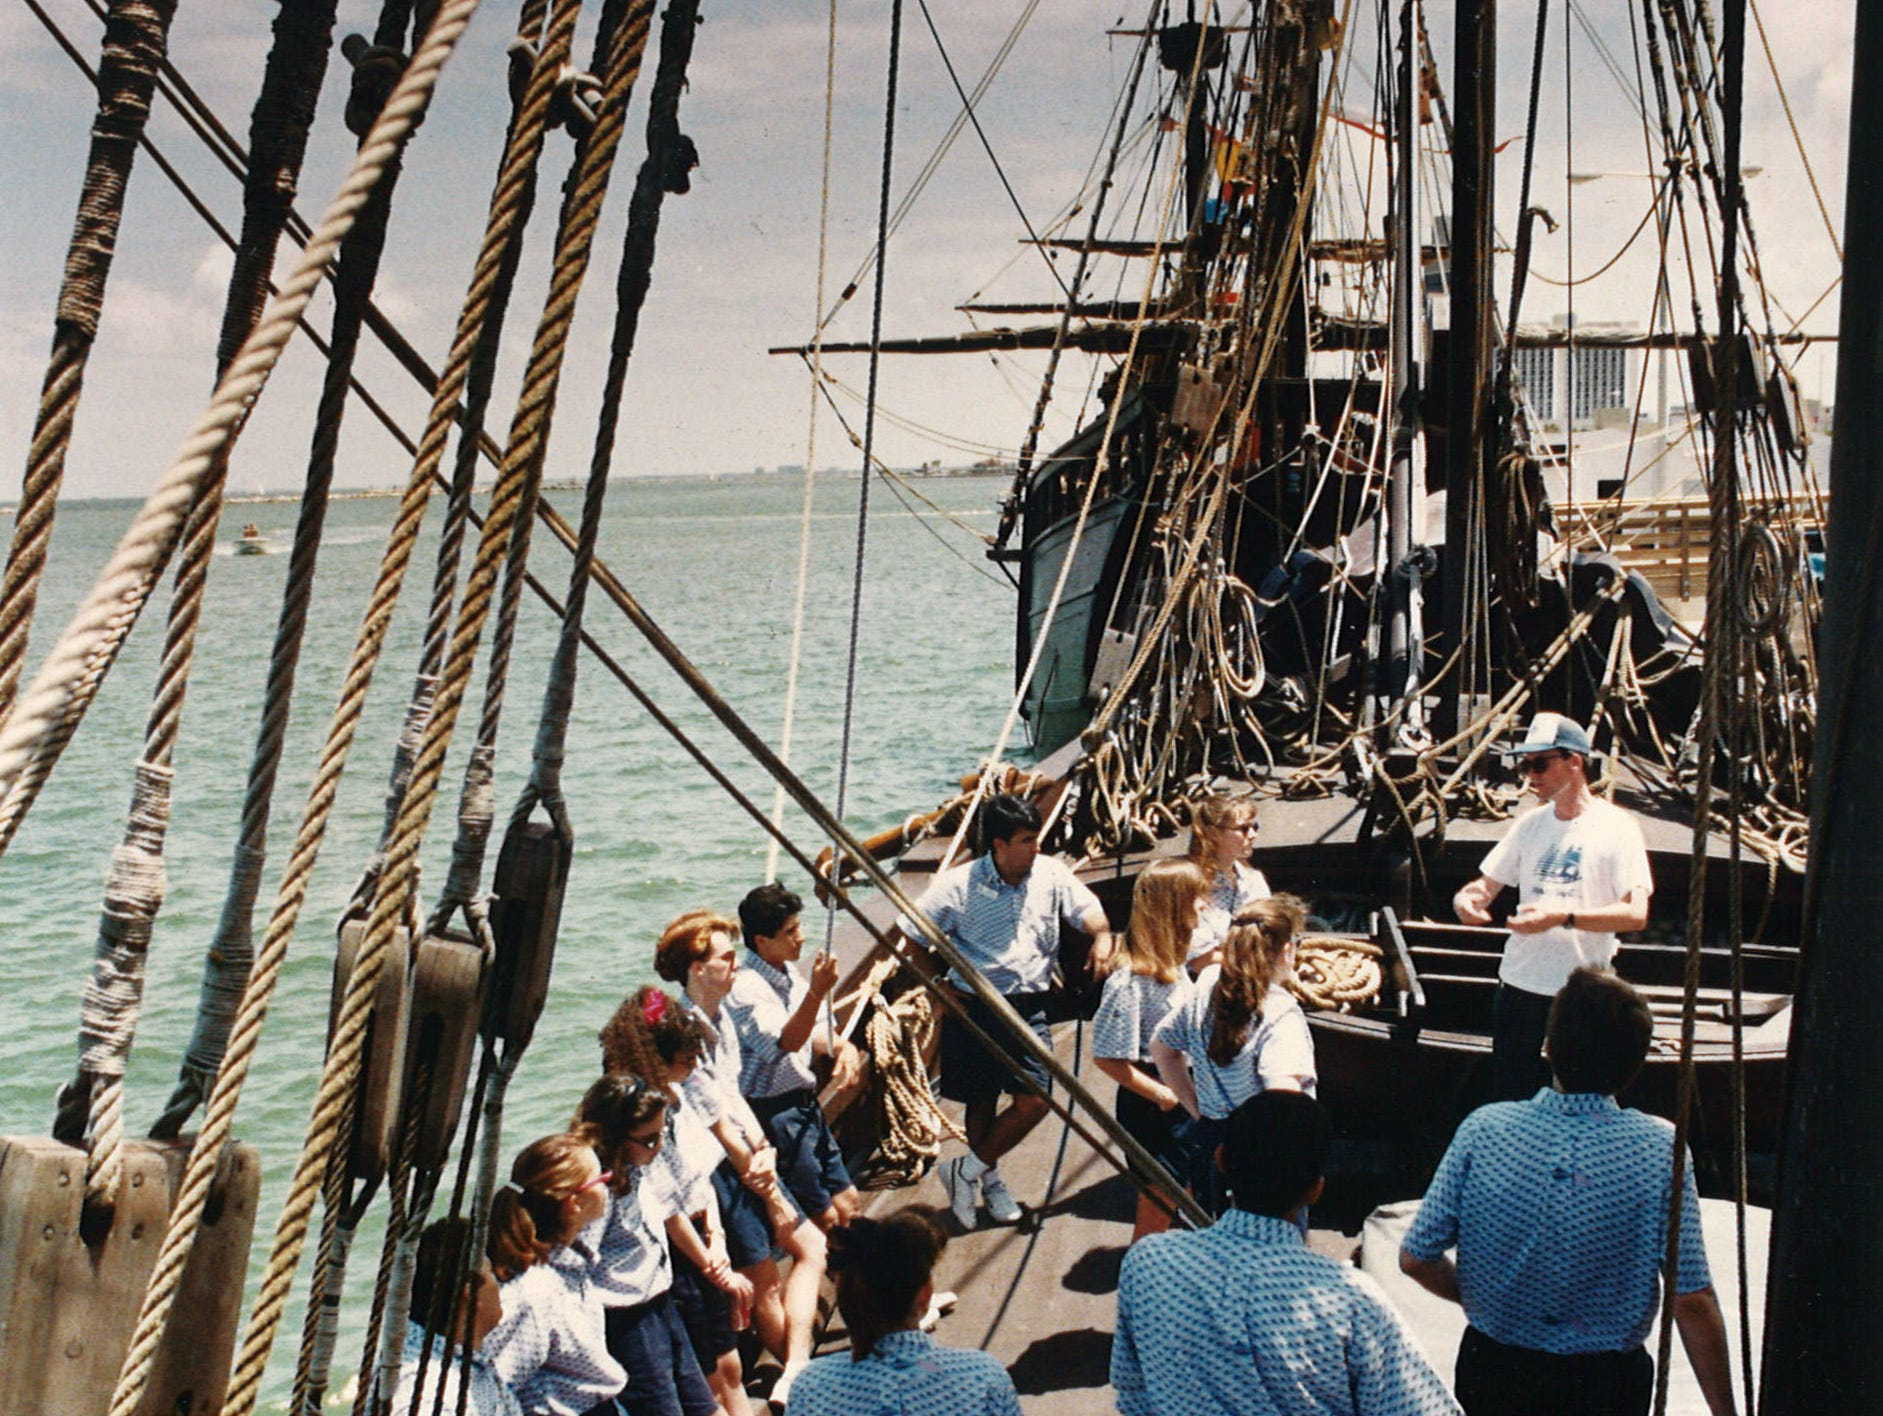 Rick Stryker (in hat), president of the Columbus Fleet Association, instructs future tour guides on proper protocol when aboard the Columbus ships. He lectured from the Niña on June 13, 1993.